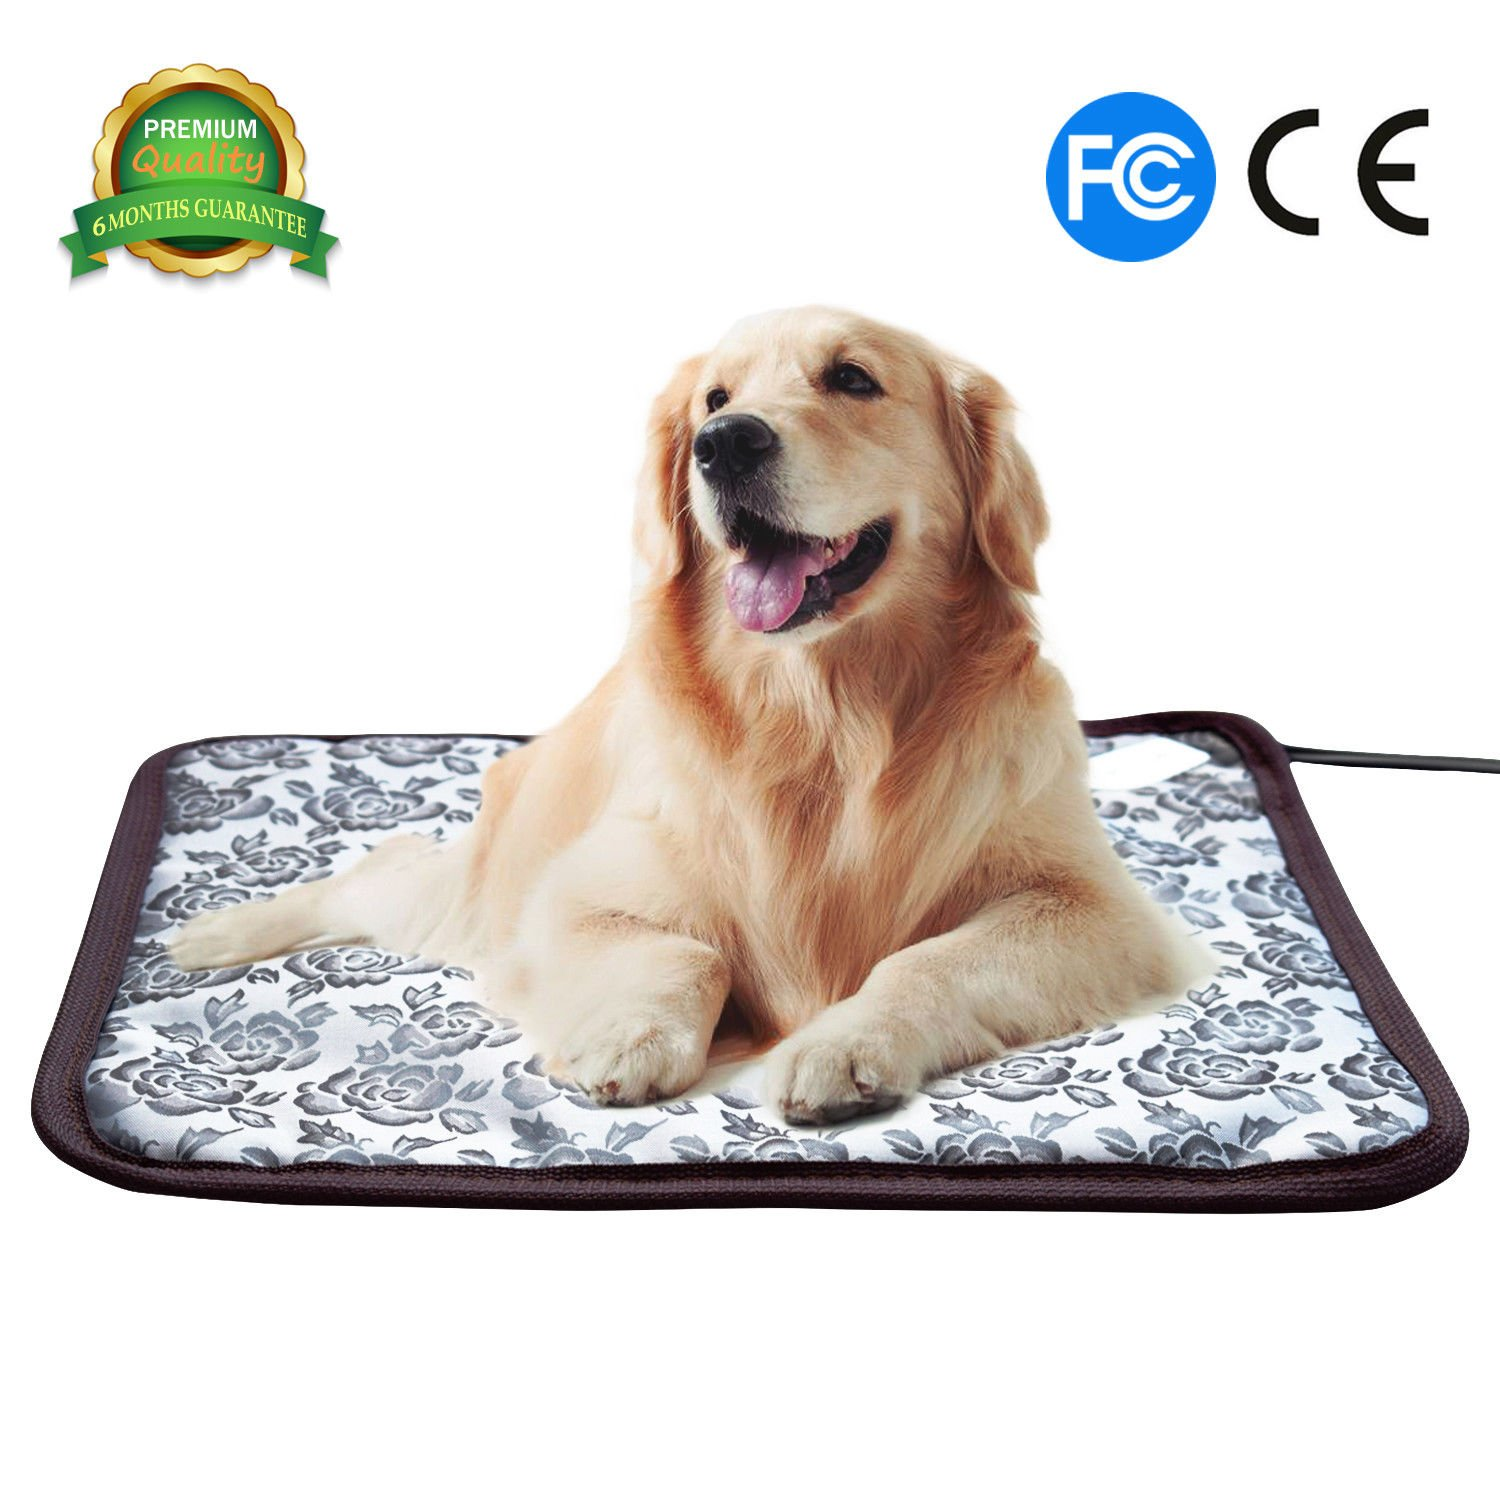 Pet Heating Pad Cat Heating Mat Waterproof Pets Heated Bed Adjustable Dog Bed Warmer Electric Heating Mat with Chew Resistant Steel Cord (17.7x17.7 Flower)